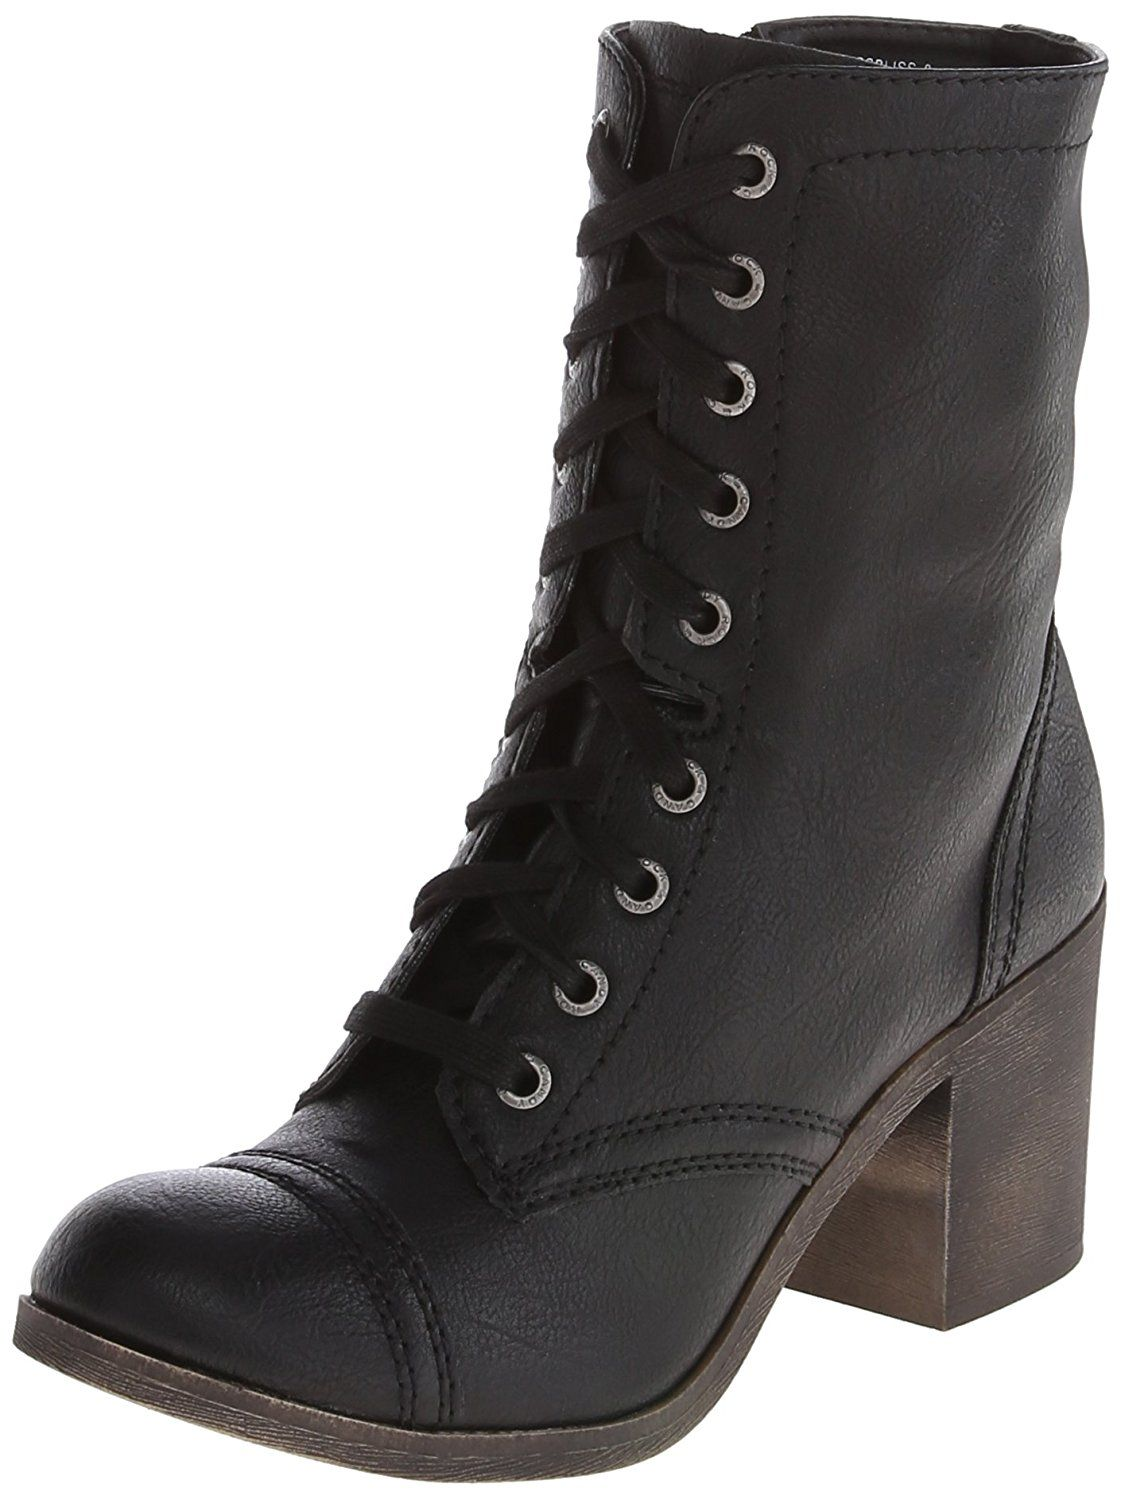 Women's Kissbliss Boot